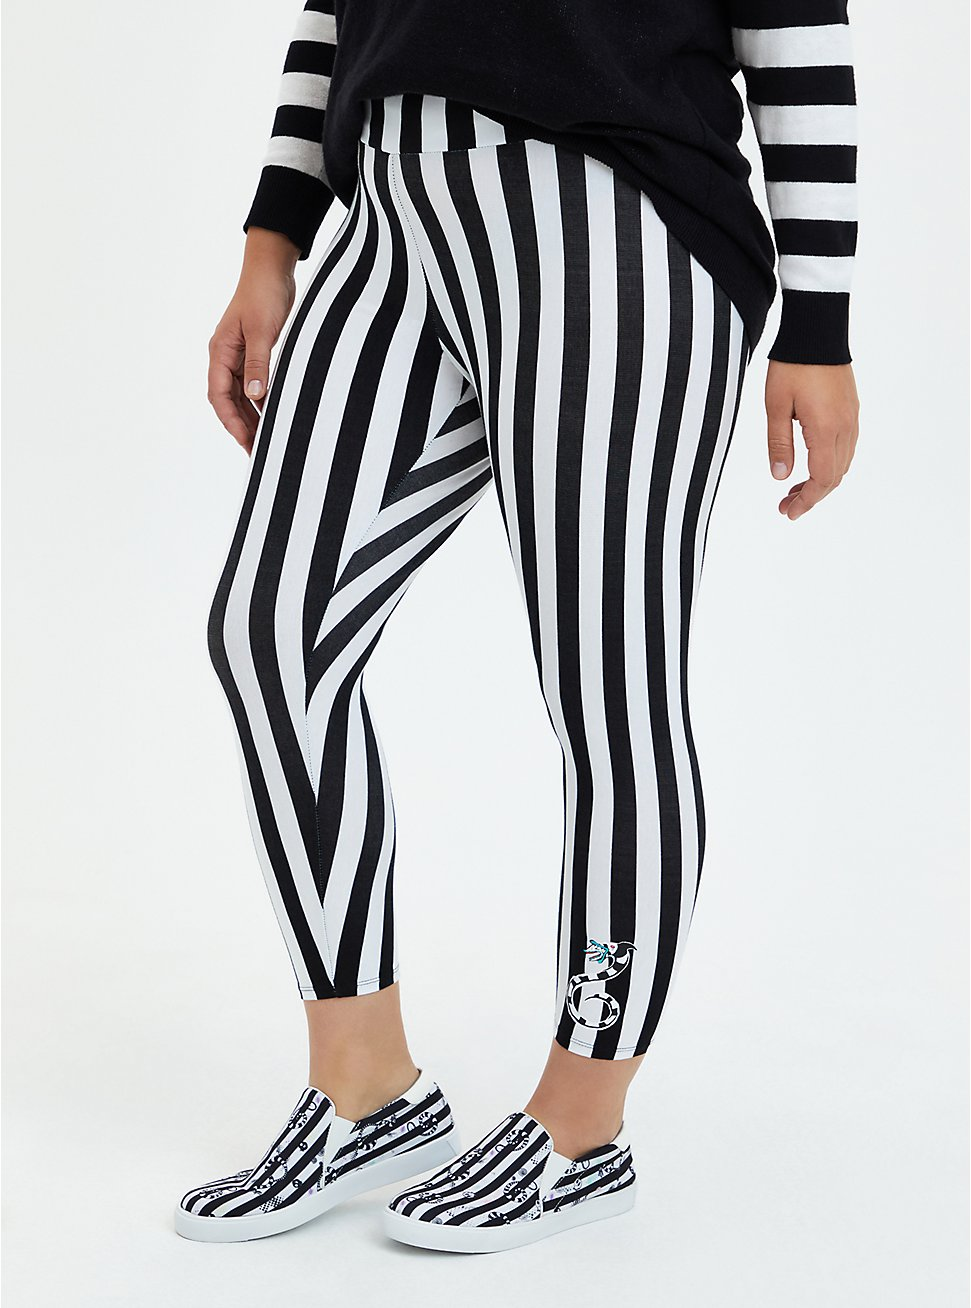 Beetlejuice Black & White Stripe Crop Legging, BLACK WHITE STRIPE, hi-res